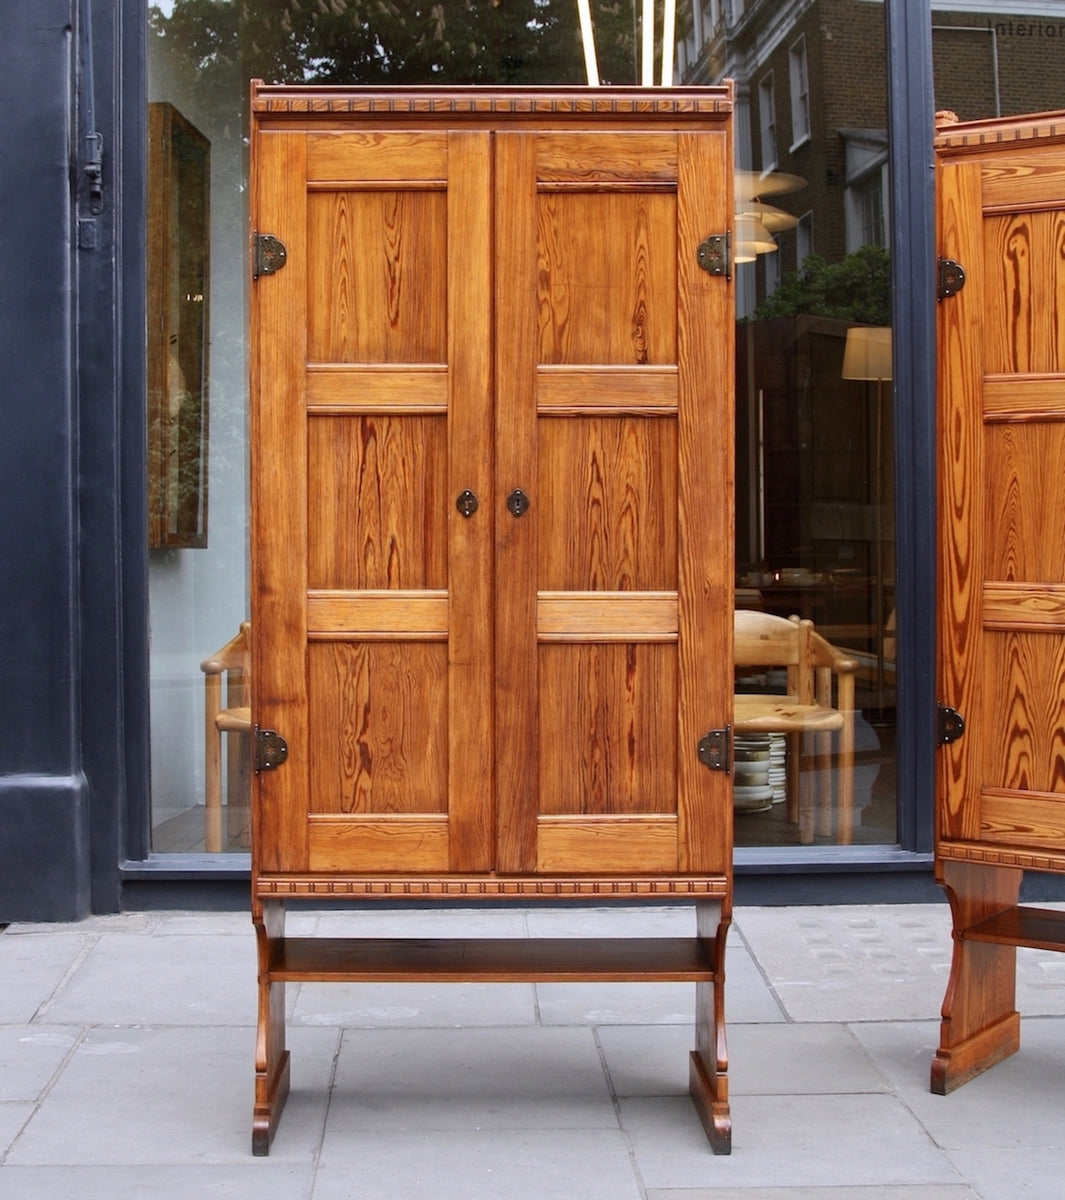 Skønvirke Cabinets Martin Nyrop - original Danish art nuveau martin nyrup Copenhagen town hall custom made furniture gesamtkunstwerk early 20th century furniture pine patina aged pair of cabinets